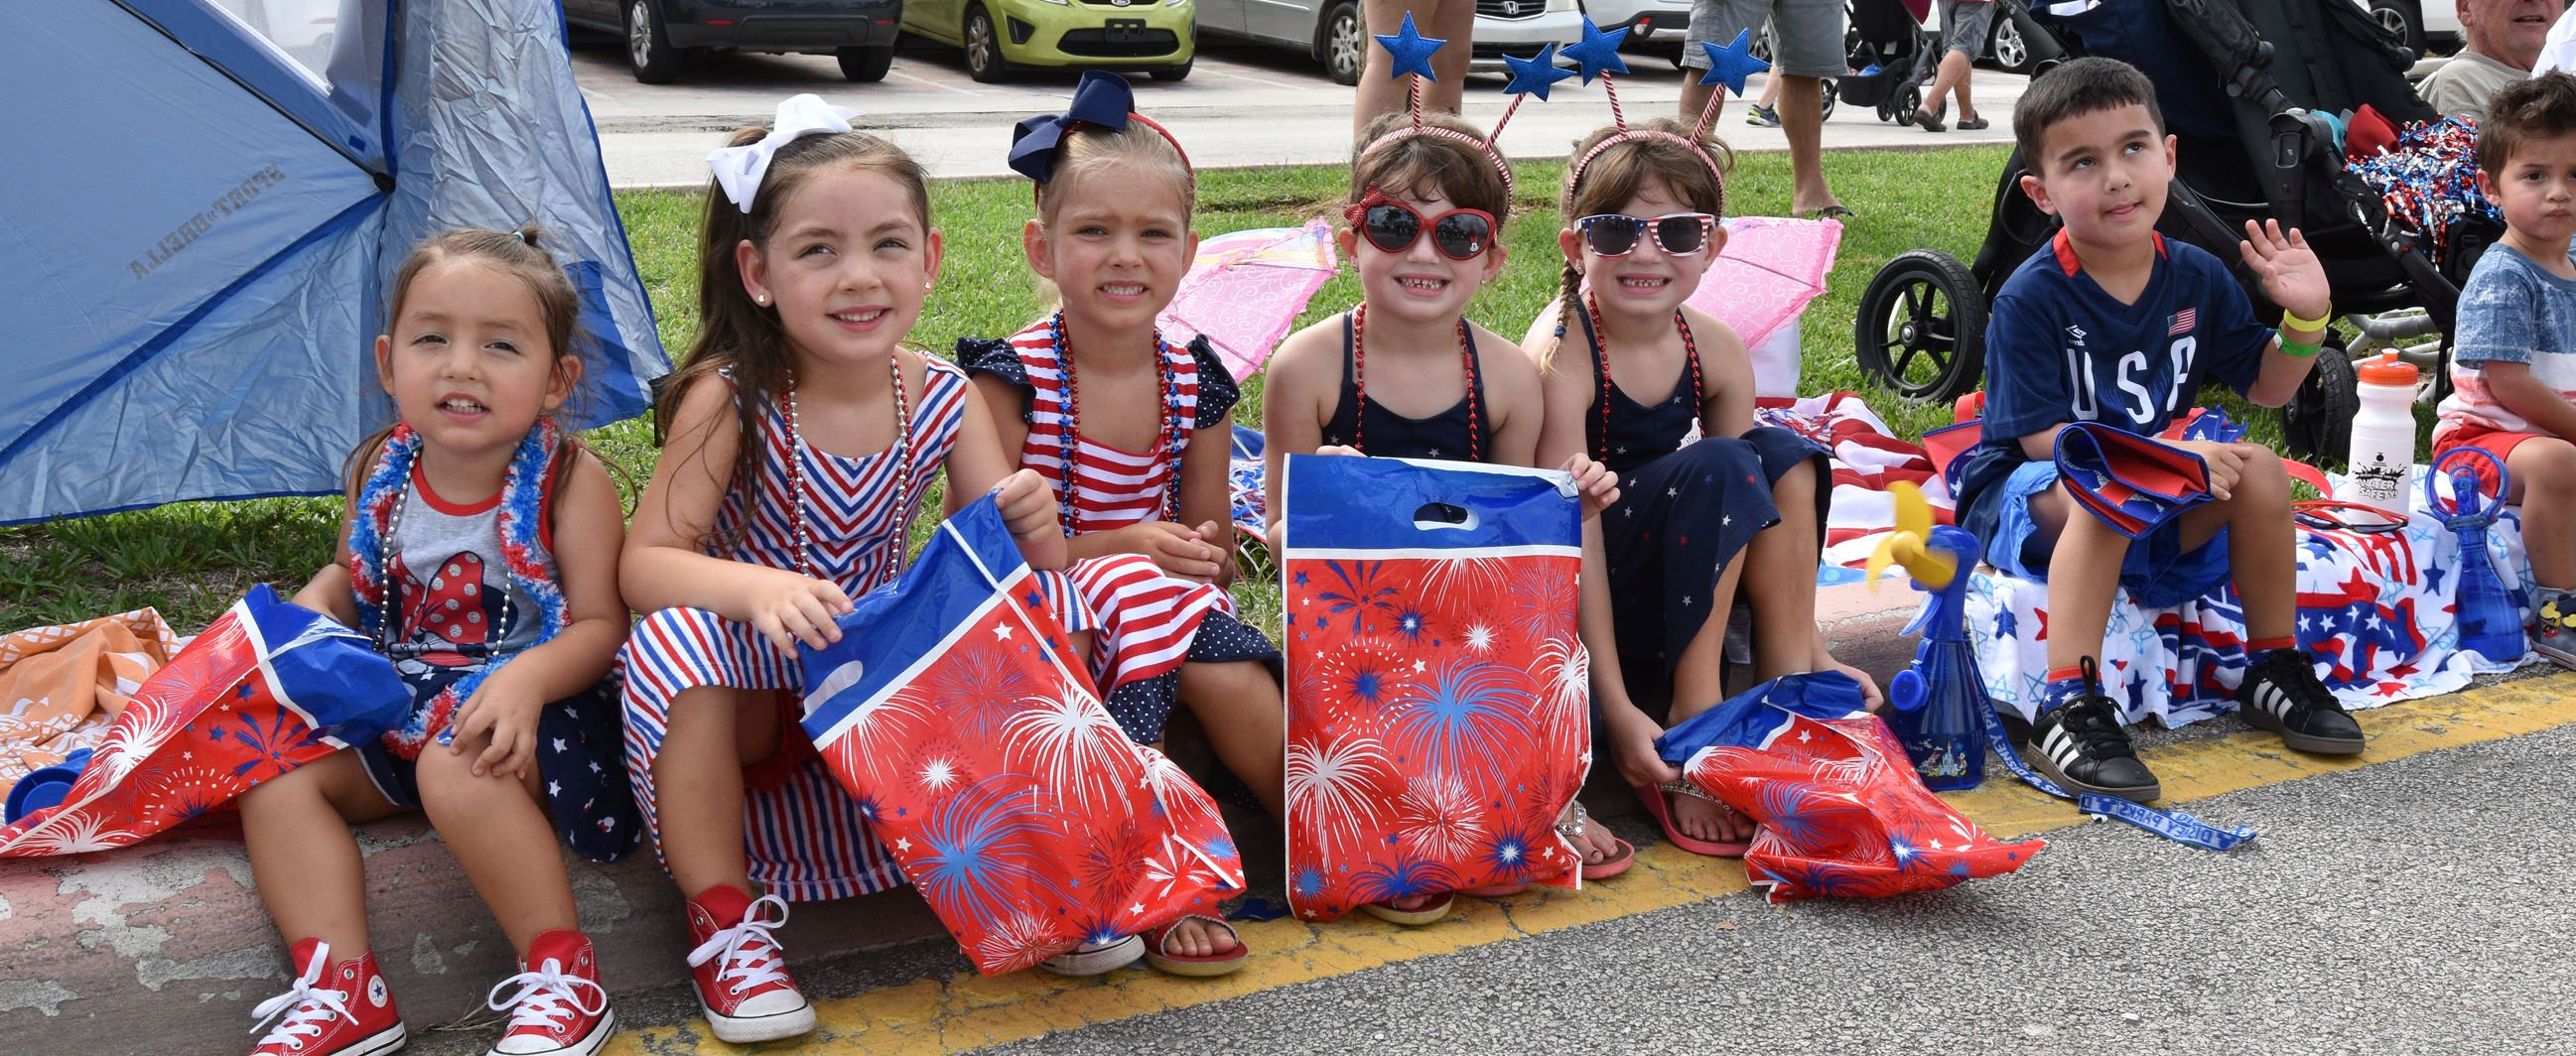 Children at July 4th Event in Lauderdale-By-The-Sea